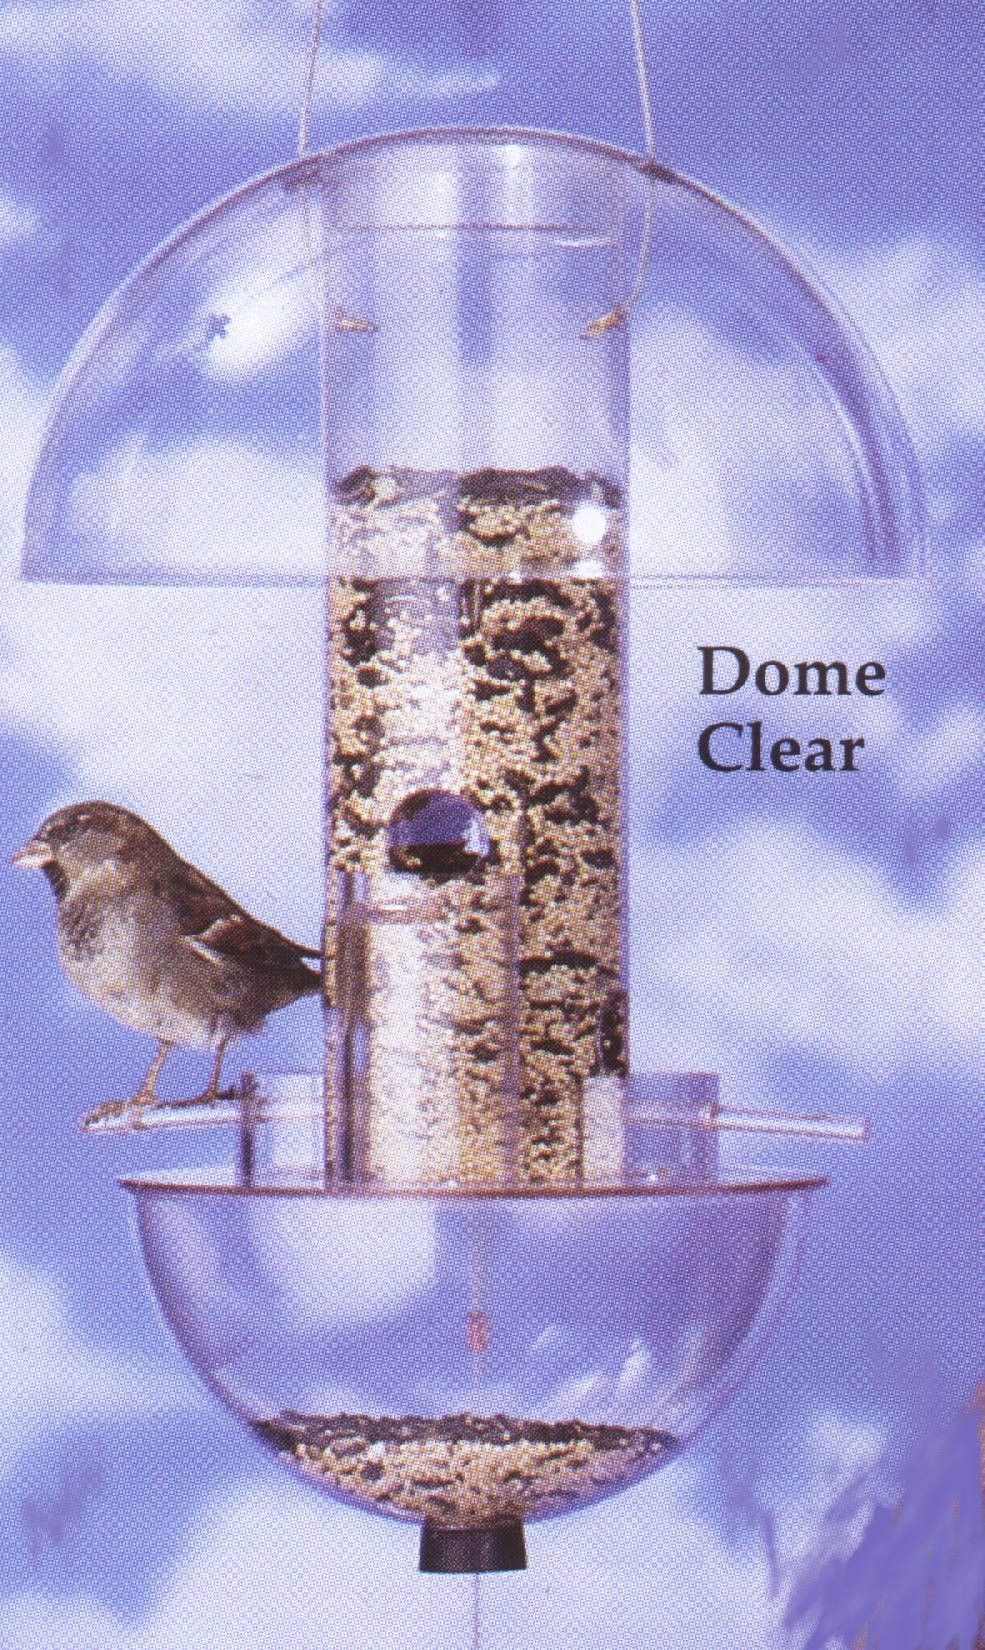 Tidy Diner Birdfeeders The Only Seed Recycling Feeders Catchs Good Tossed By